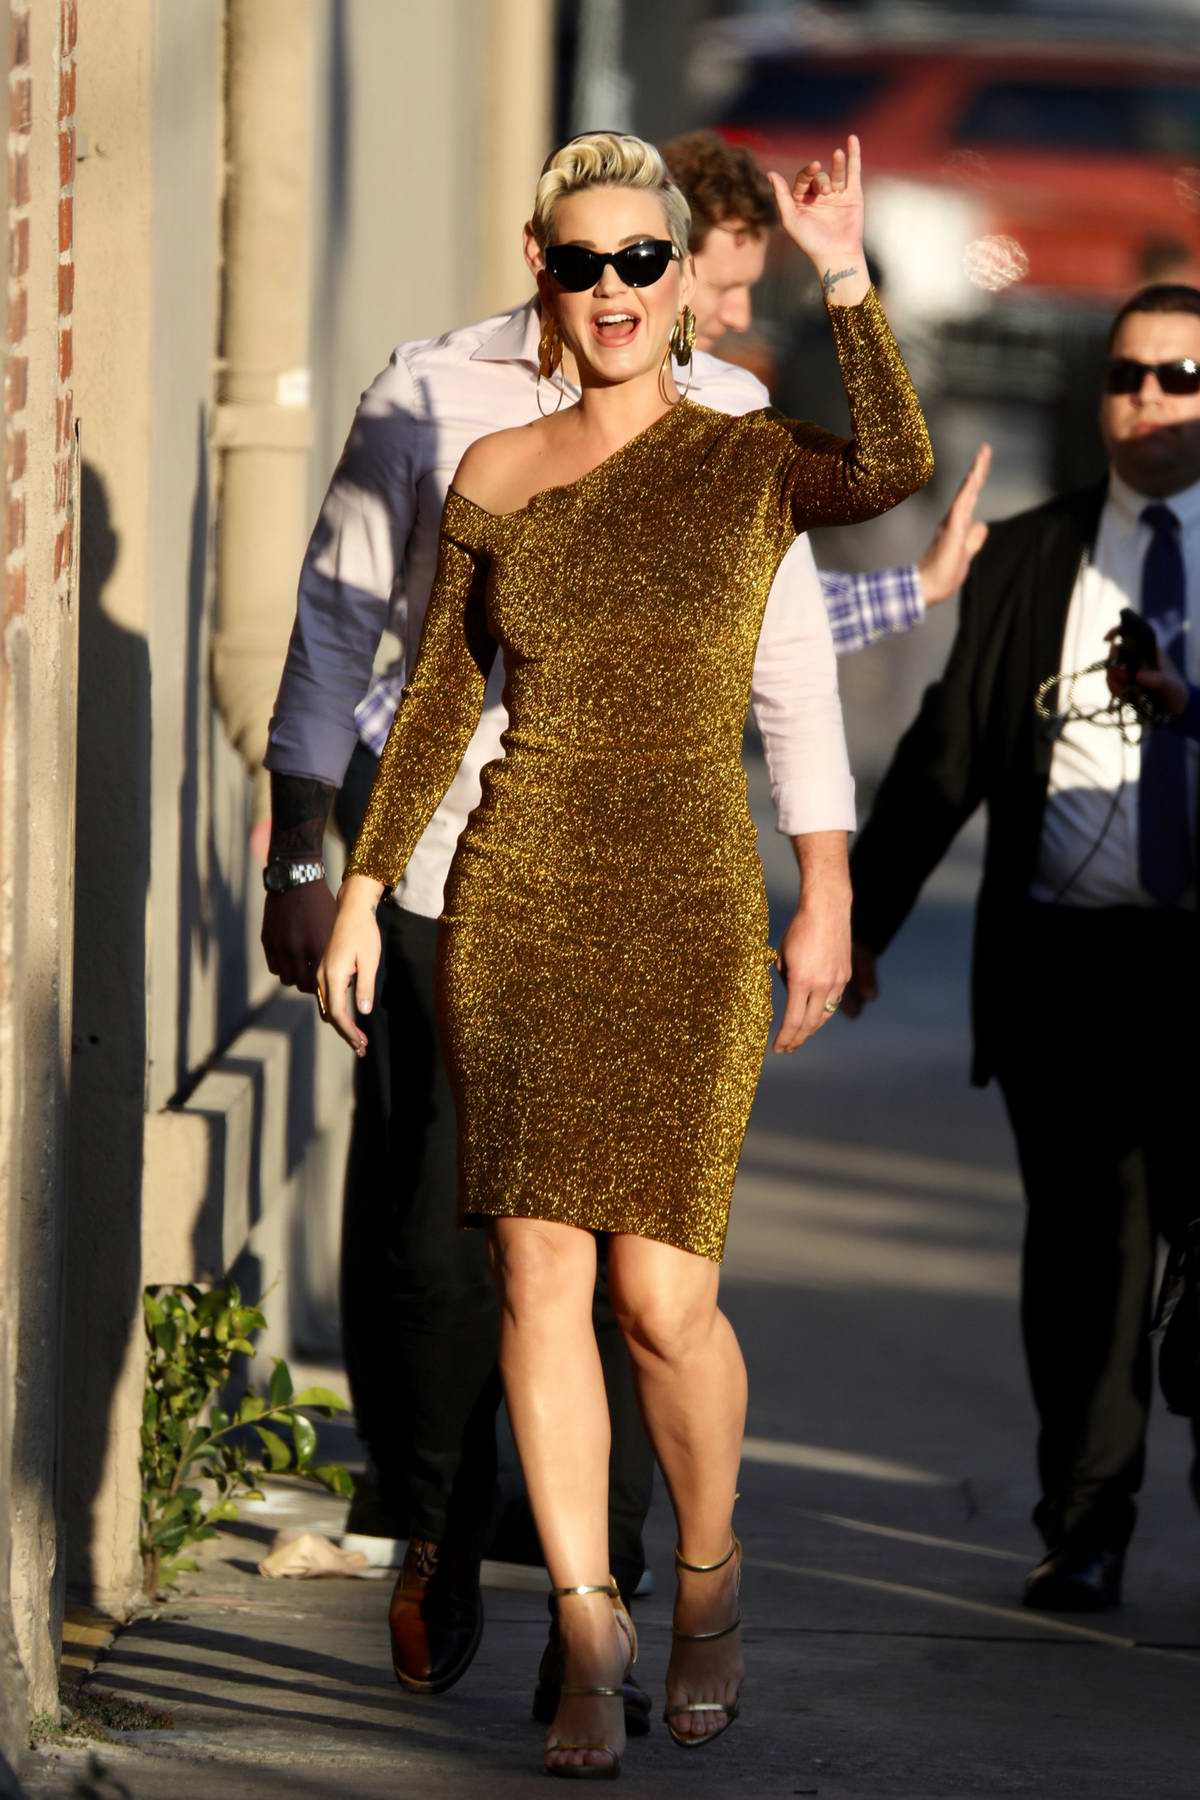 Katy Perry sparkles in a gold dress as she arrives for her appearance on Jimmy Kimmel Live! in Los Angeles